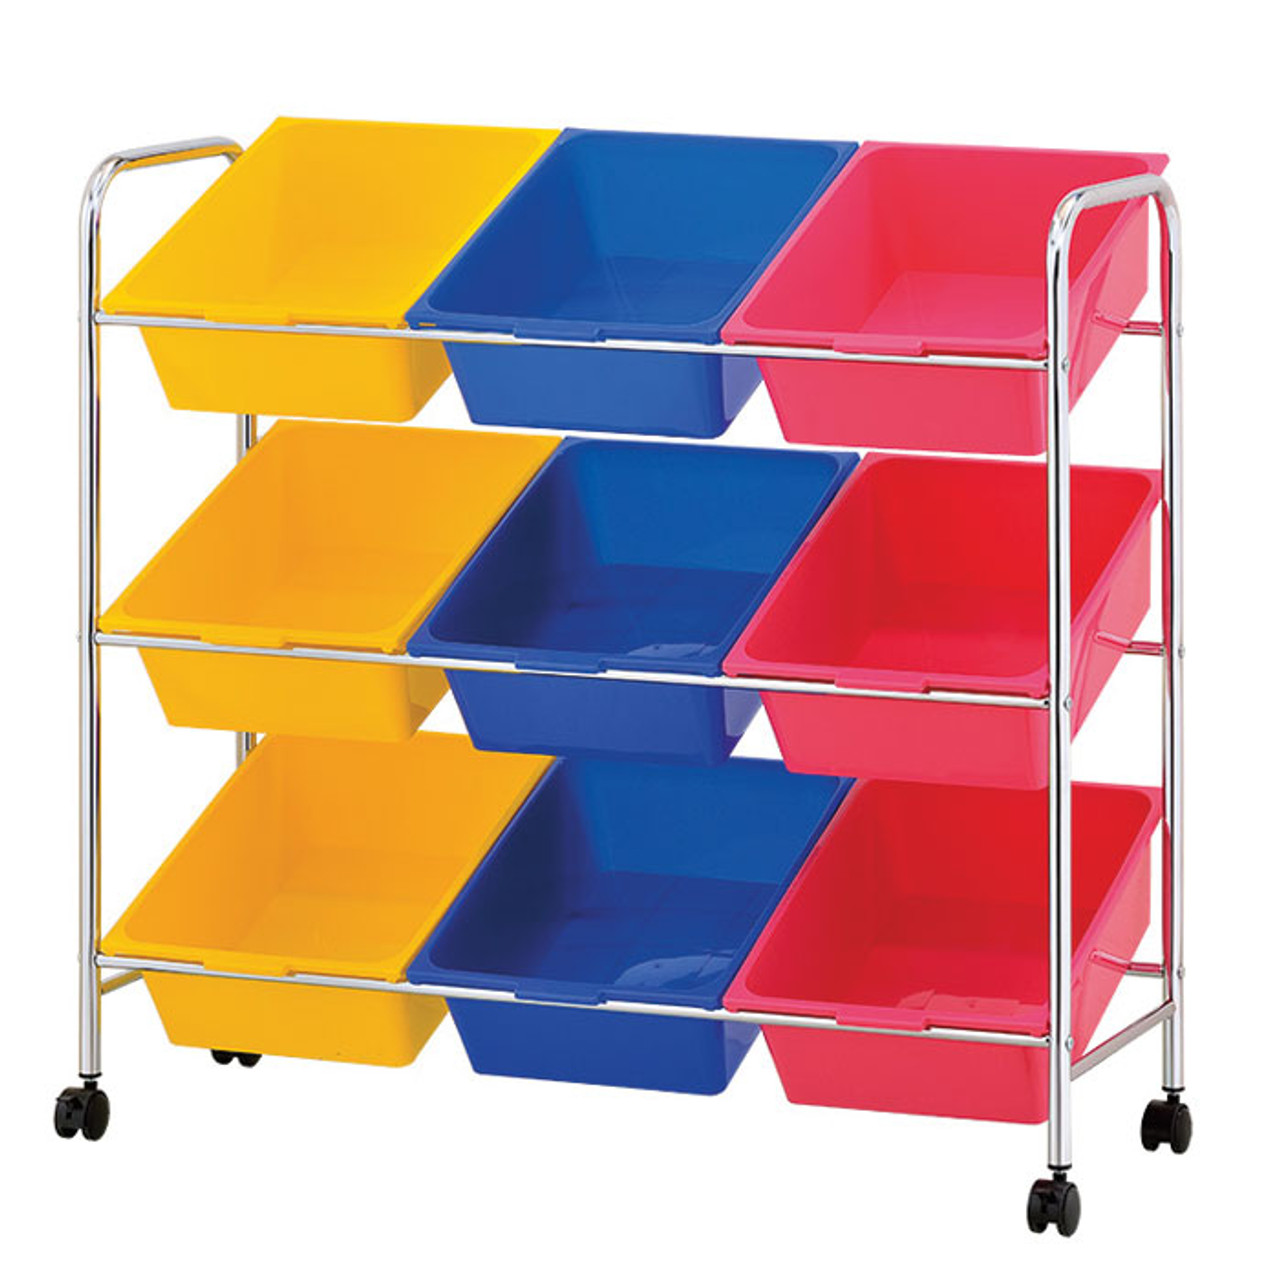 9 Plastic Drawer Storage Cart | plastic storage drawers | storage cart | rolling storage cart ...  sc 1 st  Solutions & 9 Plastic Drawer Storage Cart | plastic storage drawers | storage ...